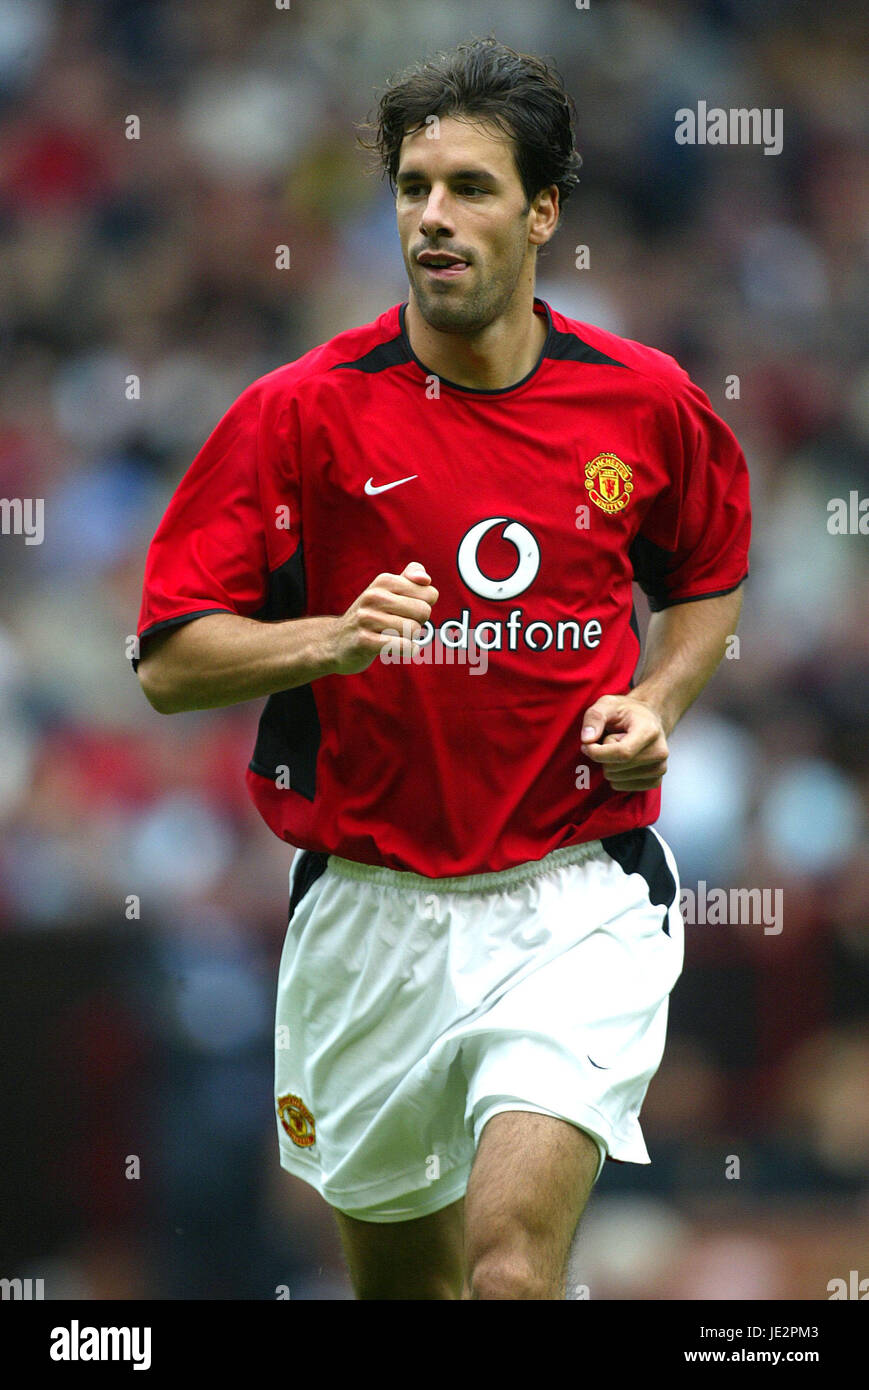 wholesale dealer 174d6 bf7b1 RUUD VAN NISTELROOY MANCHESTER UNITED FC OLD TRAFFORD ...